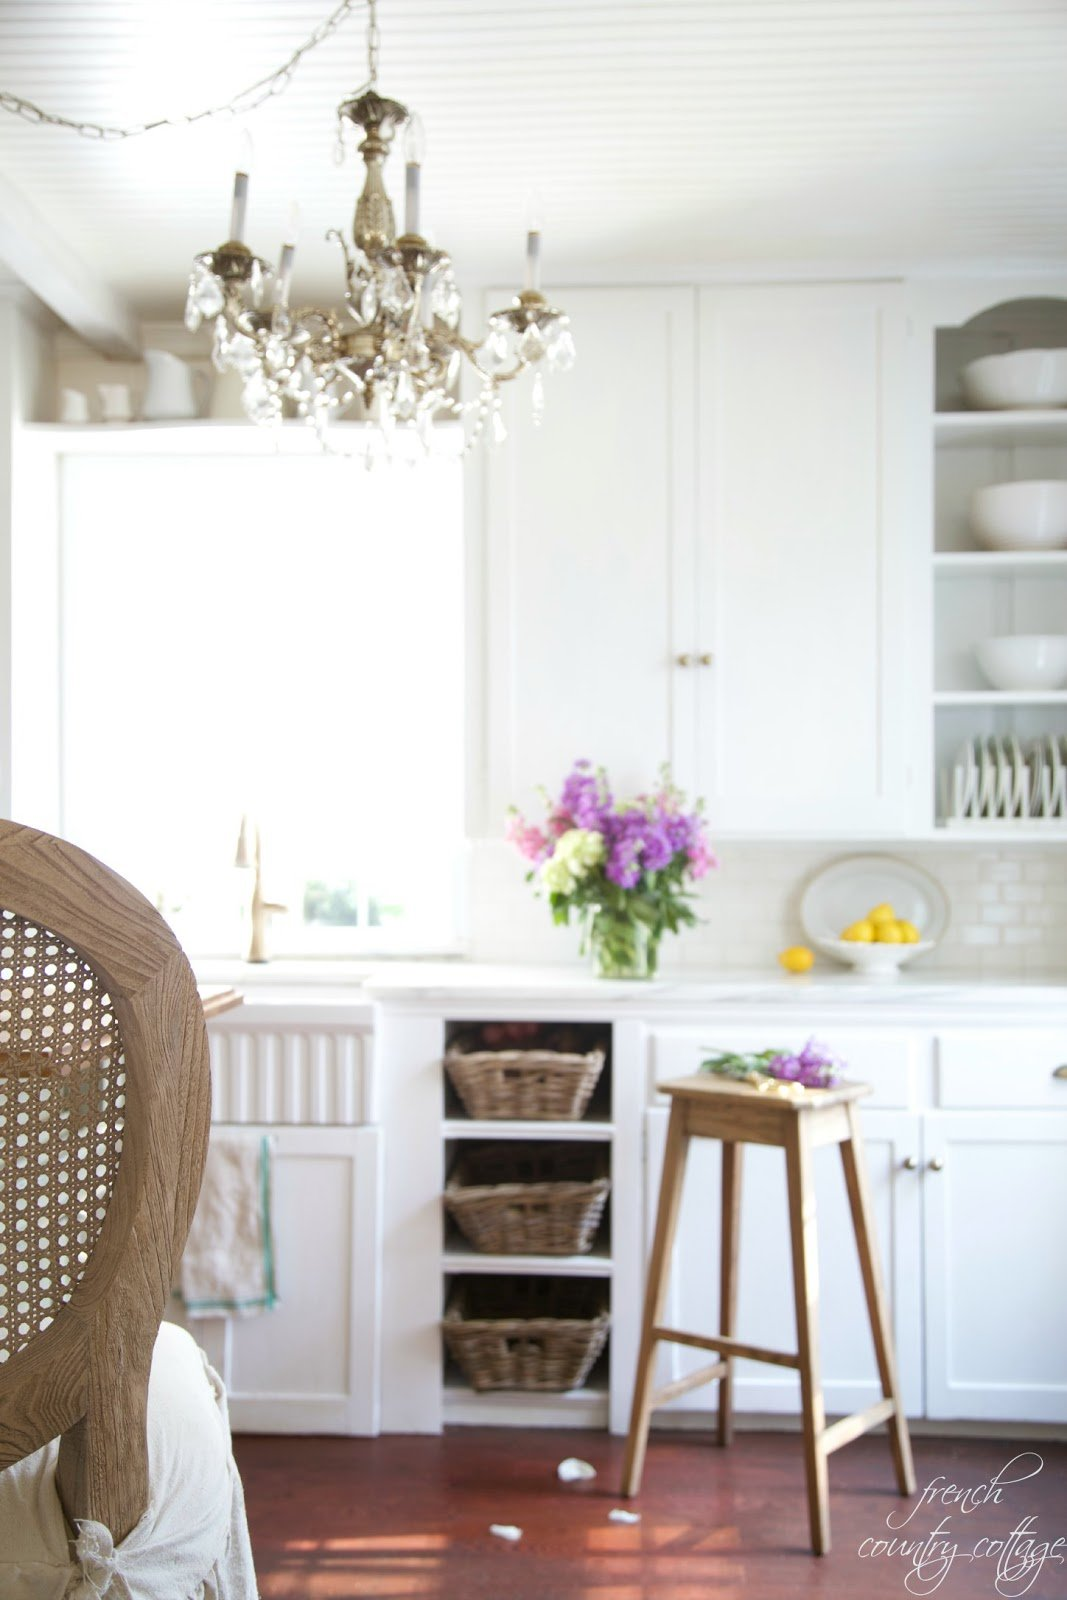 {Kitchen via French Country Cottage}